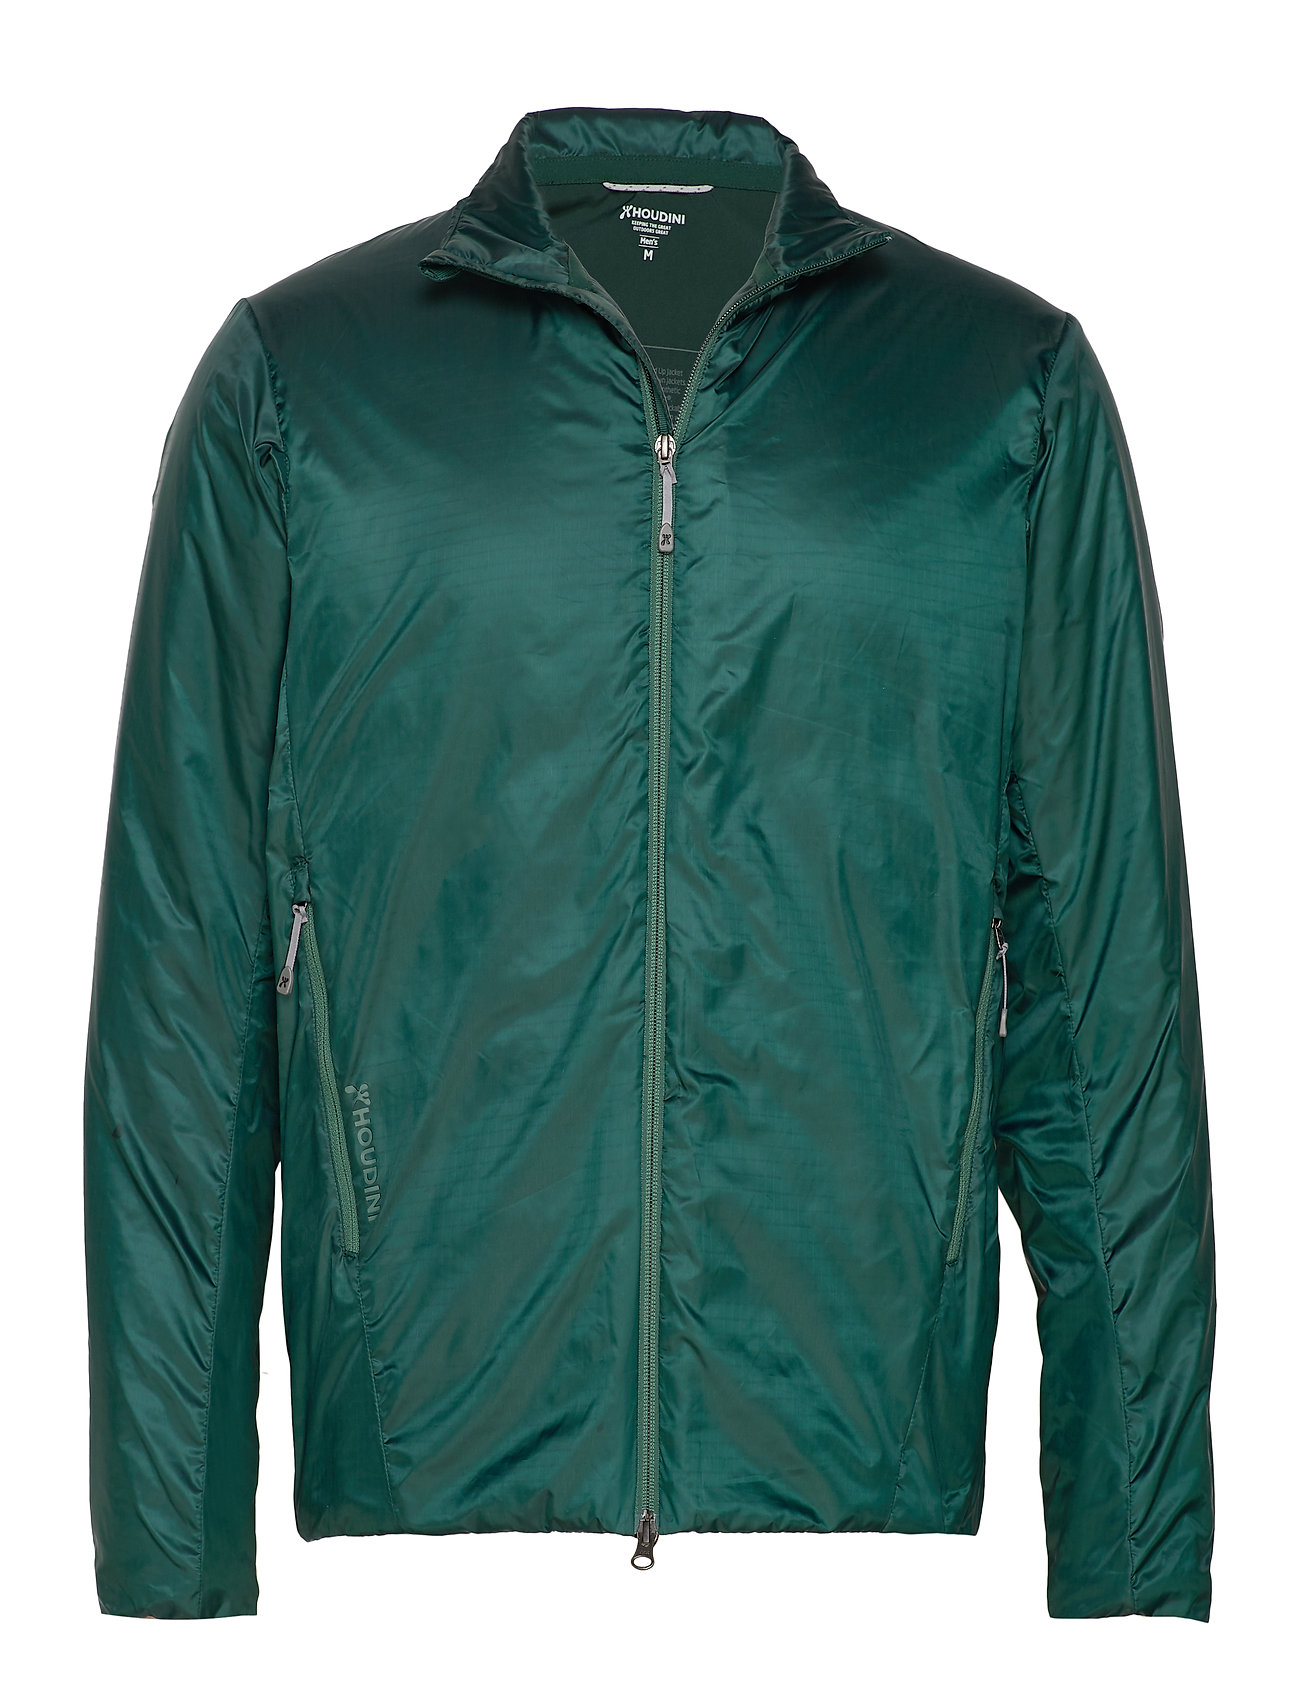 Houdini M's Up Jacket - GIMMIE GREEN BRIGHT